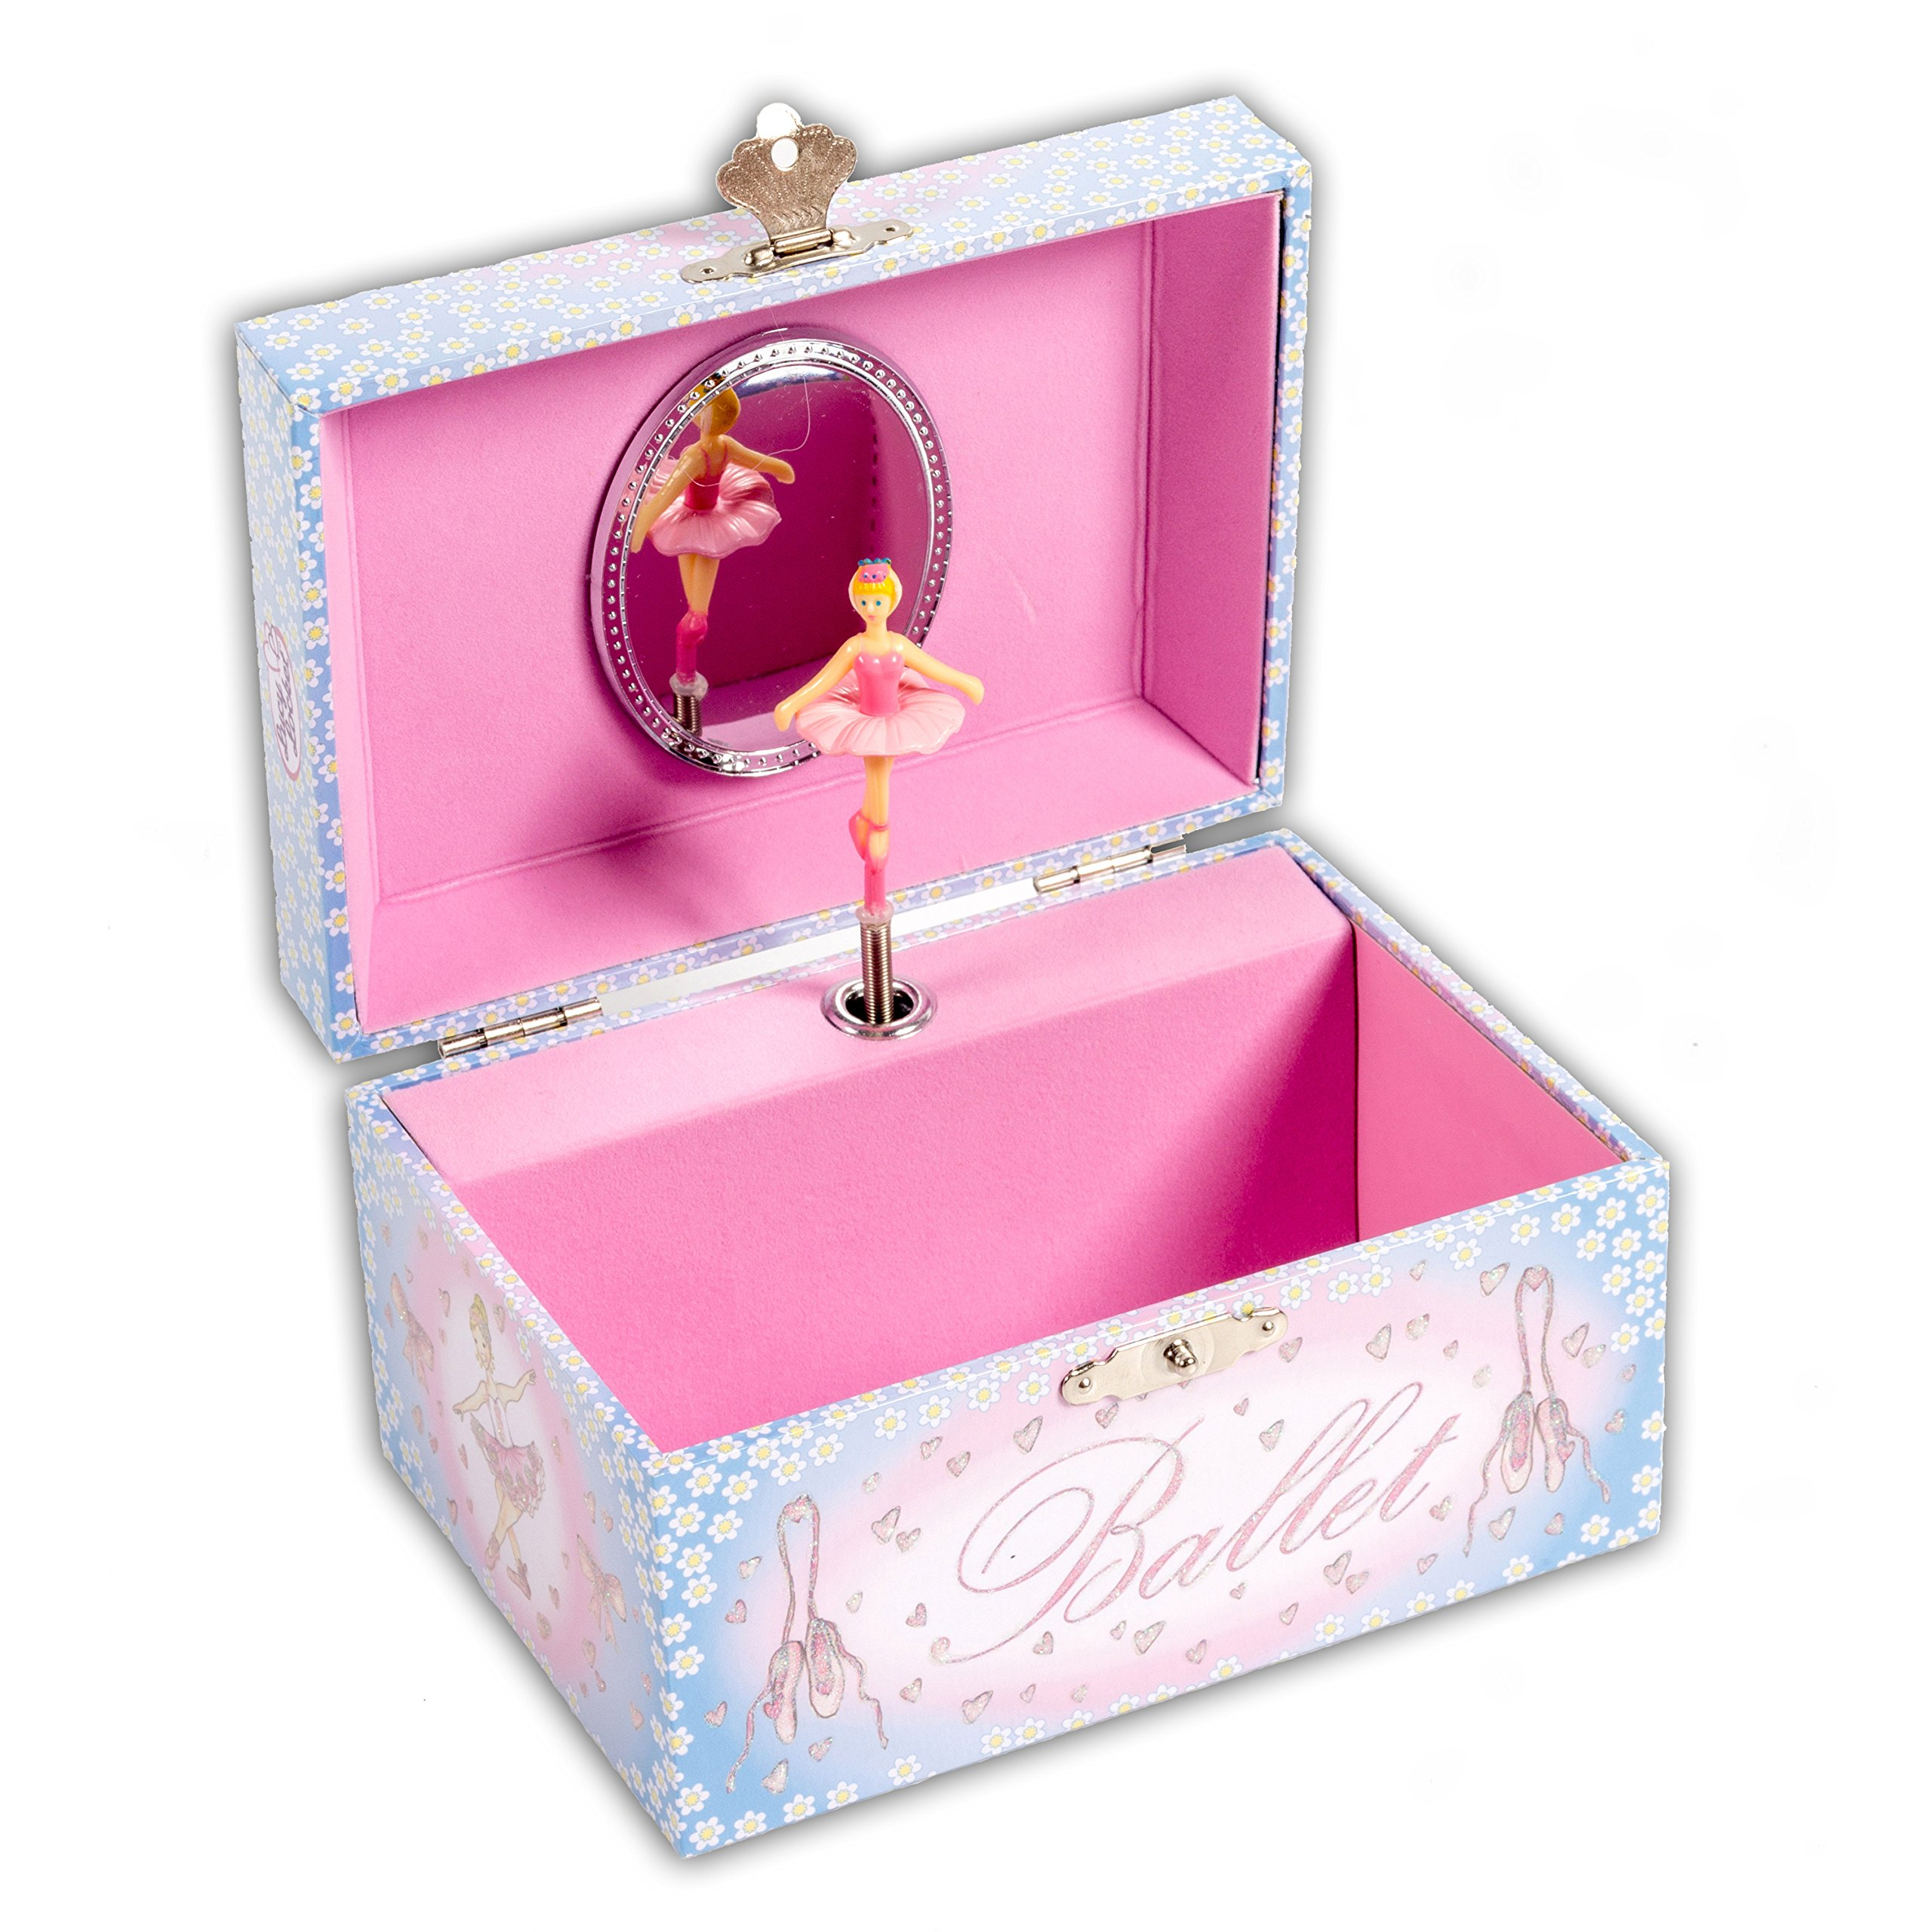 Ballerina Kids Musical Jewelry Box - Pink and Blue Glittery Musical Box - Lucy Locket